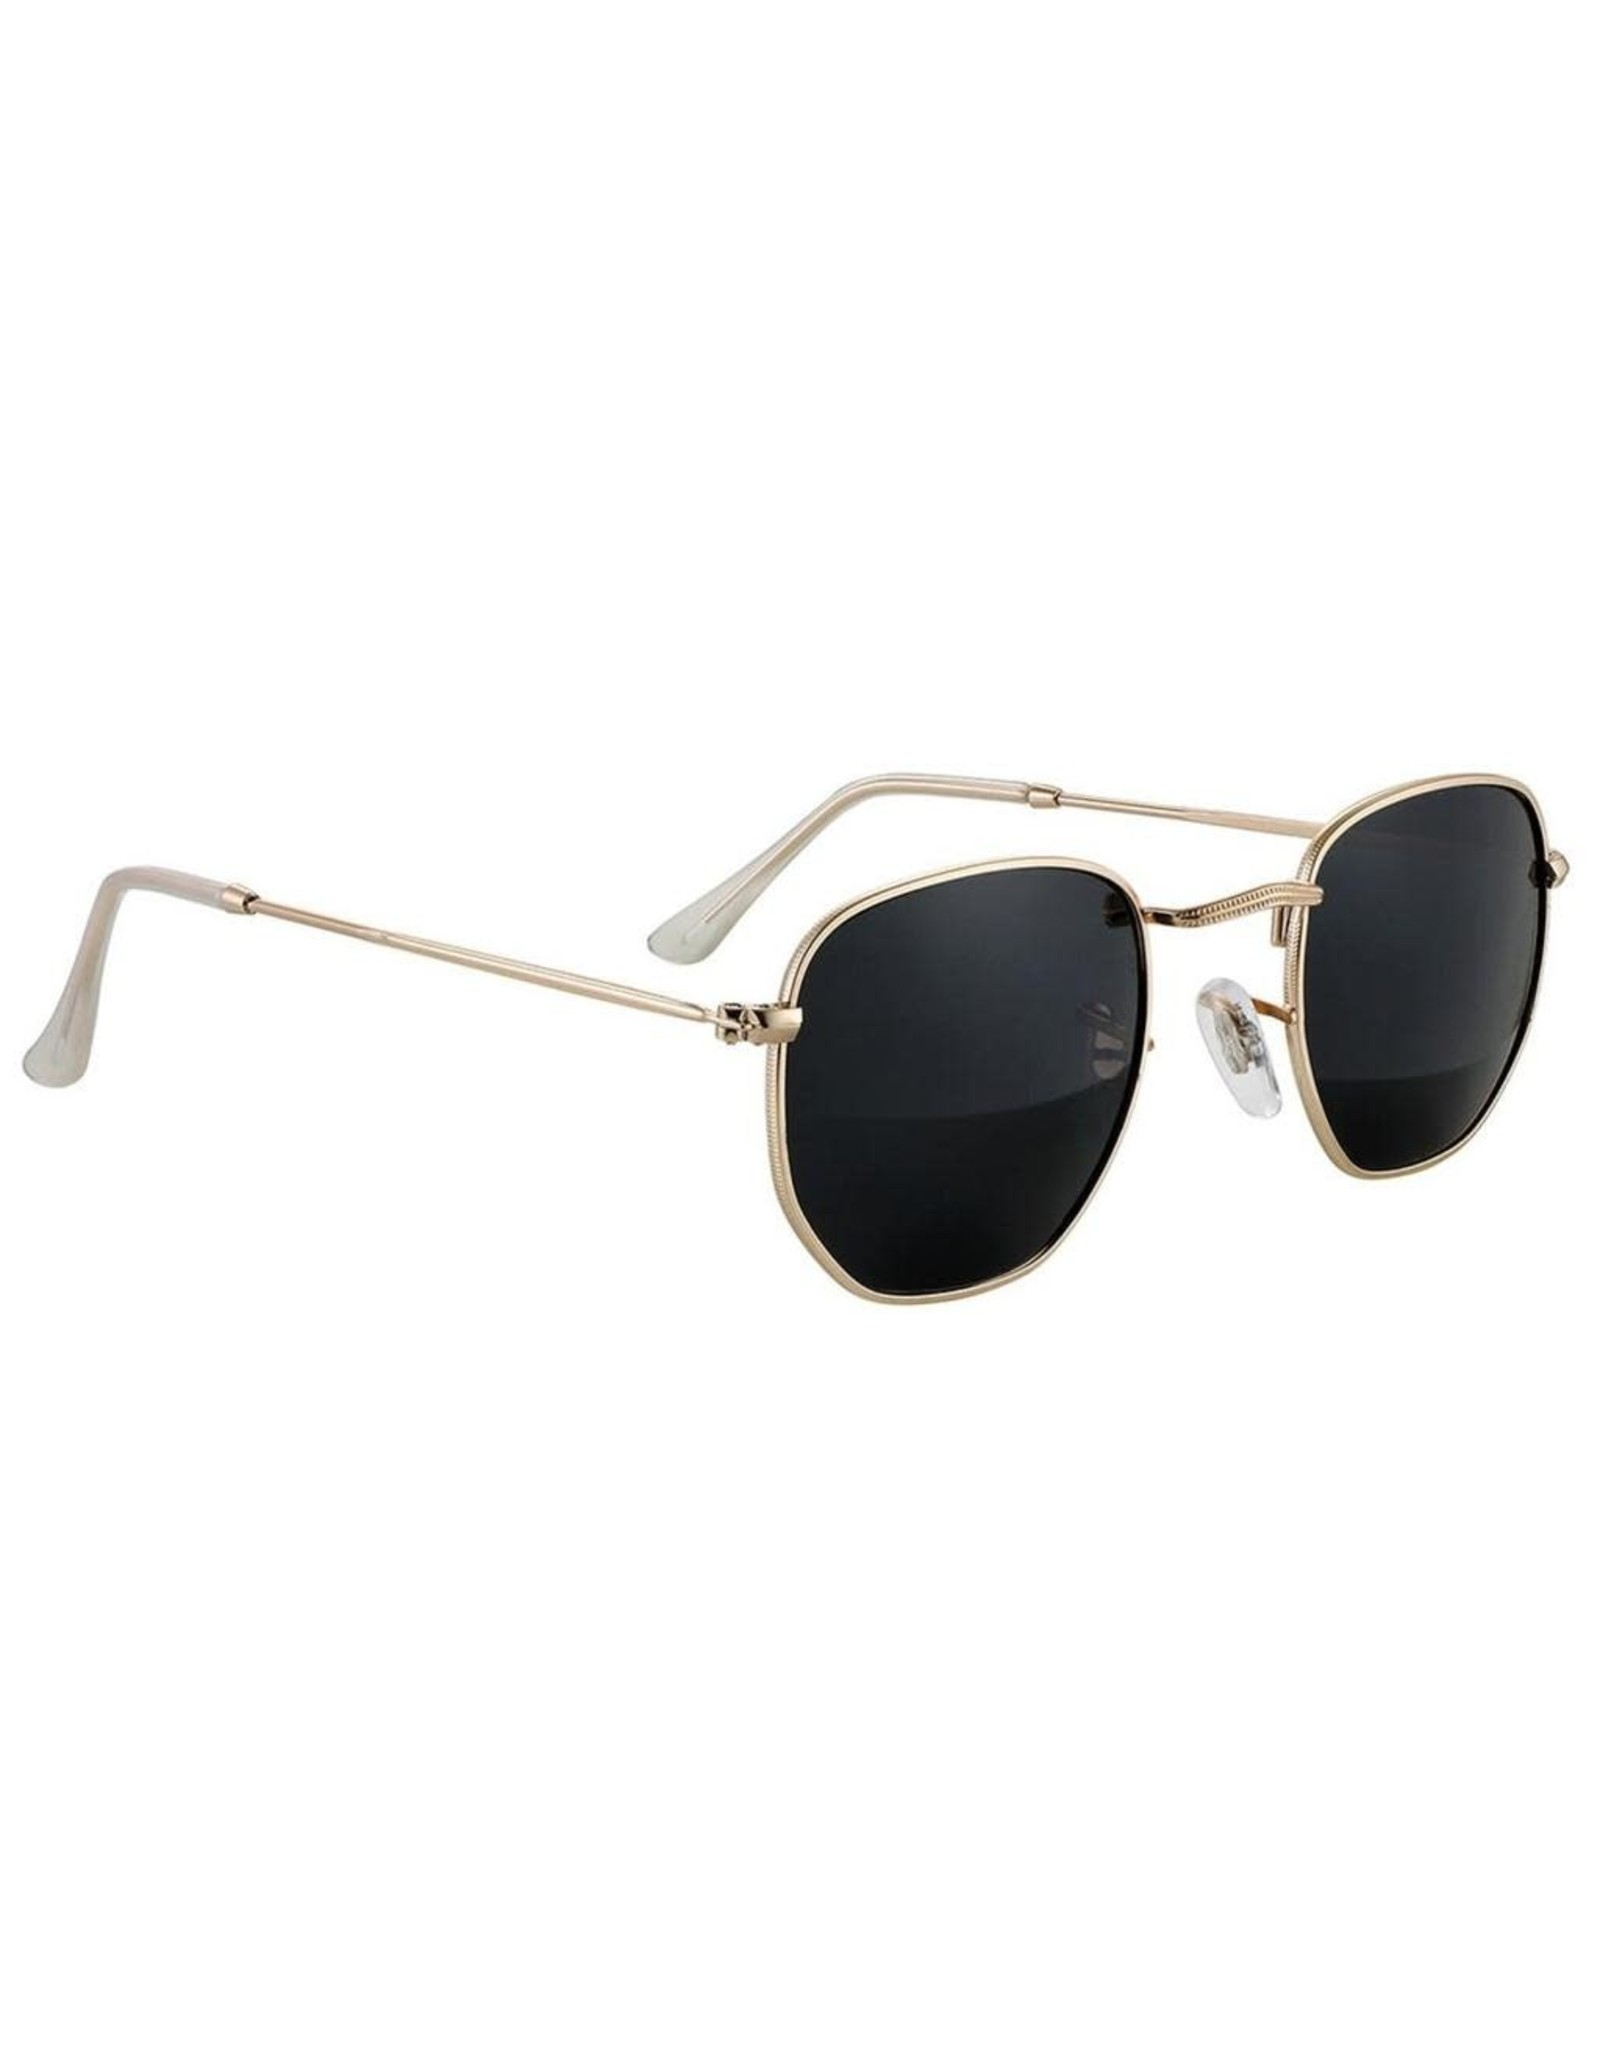 Glassy - Lunette soleil homme turner polarized gold